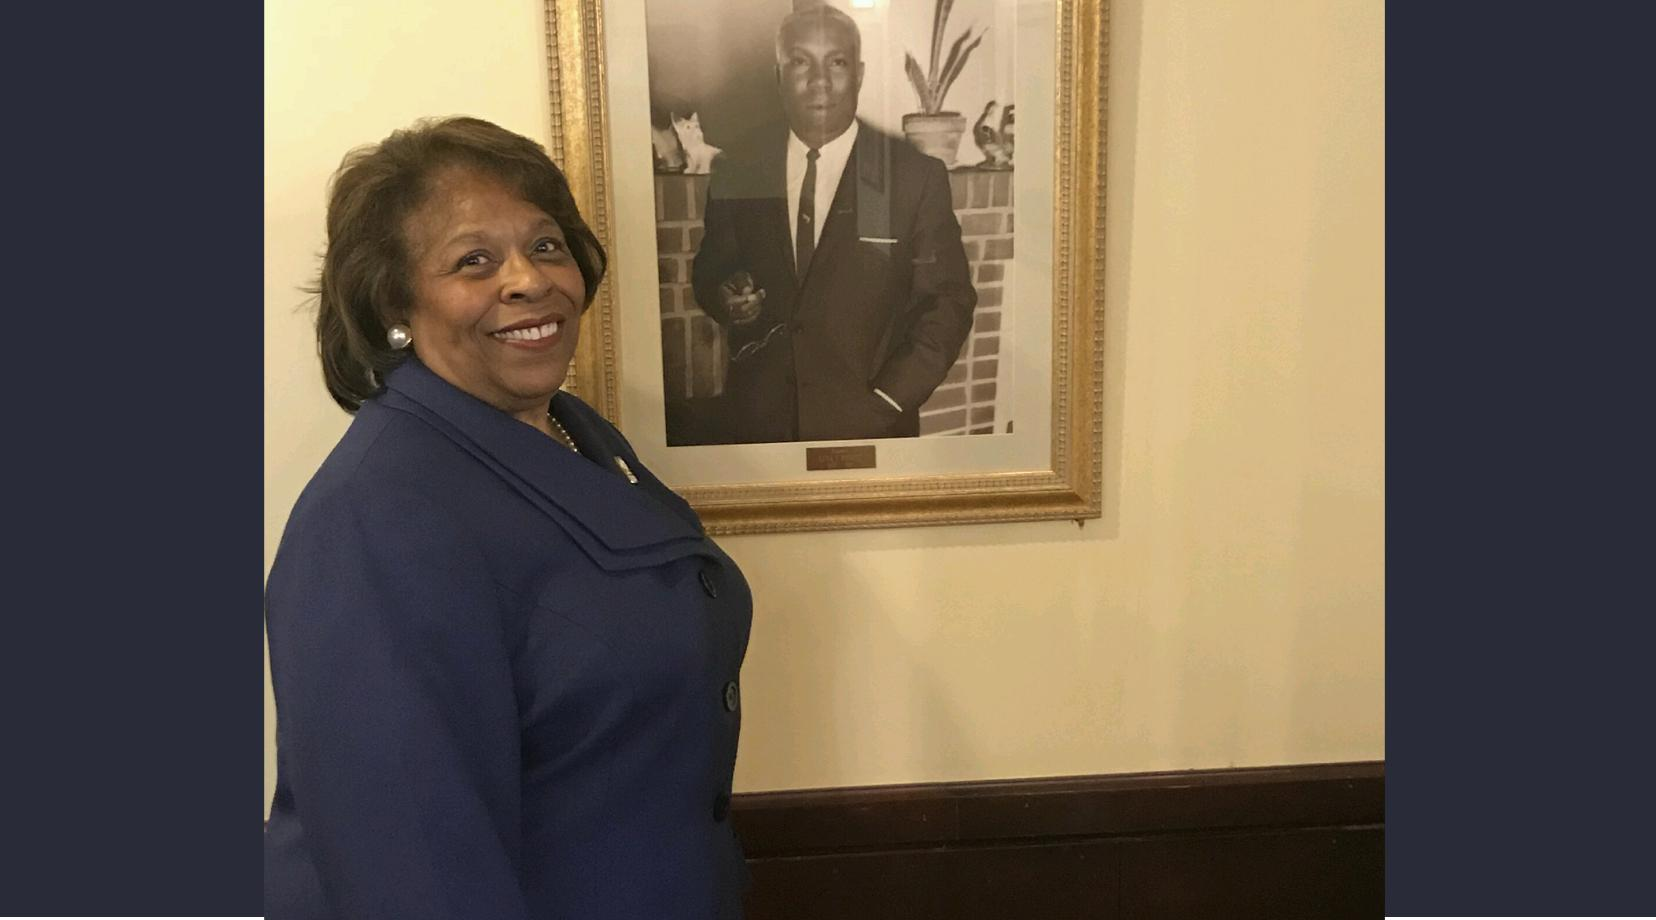 Dr. Wilma Mishoe has made DSU history by becoming the first offspring of a DSU president to serve in the same leadership position at Del State. Dr. Mishoe began her new chapter on Jan. 2 as the interim DSU president.